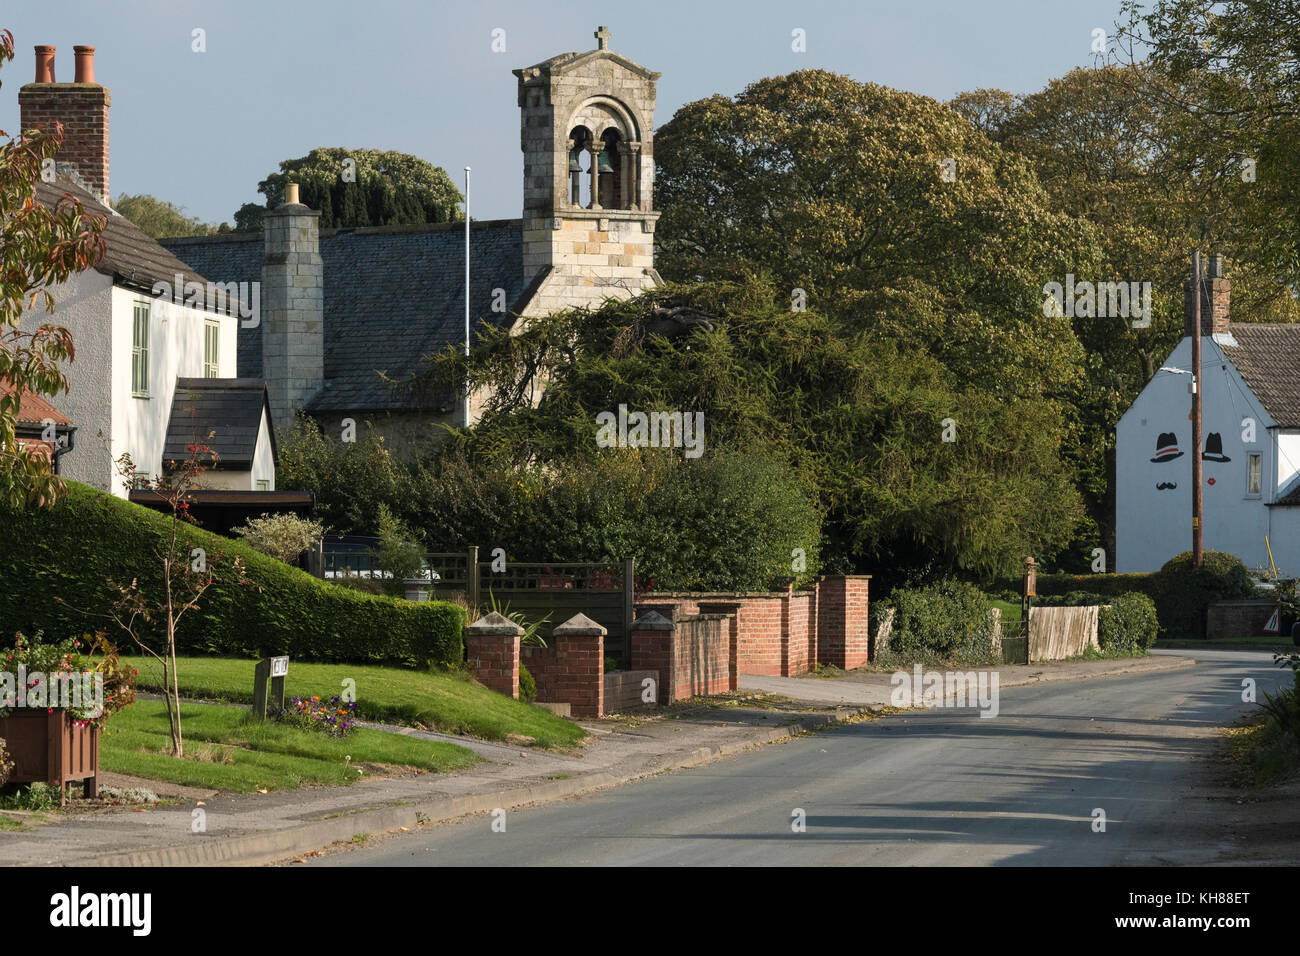 View along quiet, rural country lane towards tall bell tower of St Giles Church & attractive village cottages - Stock Image